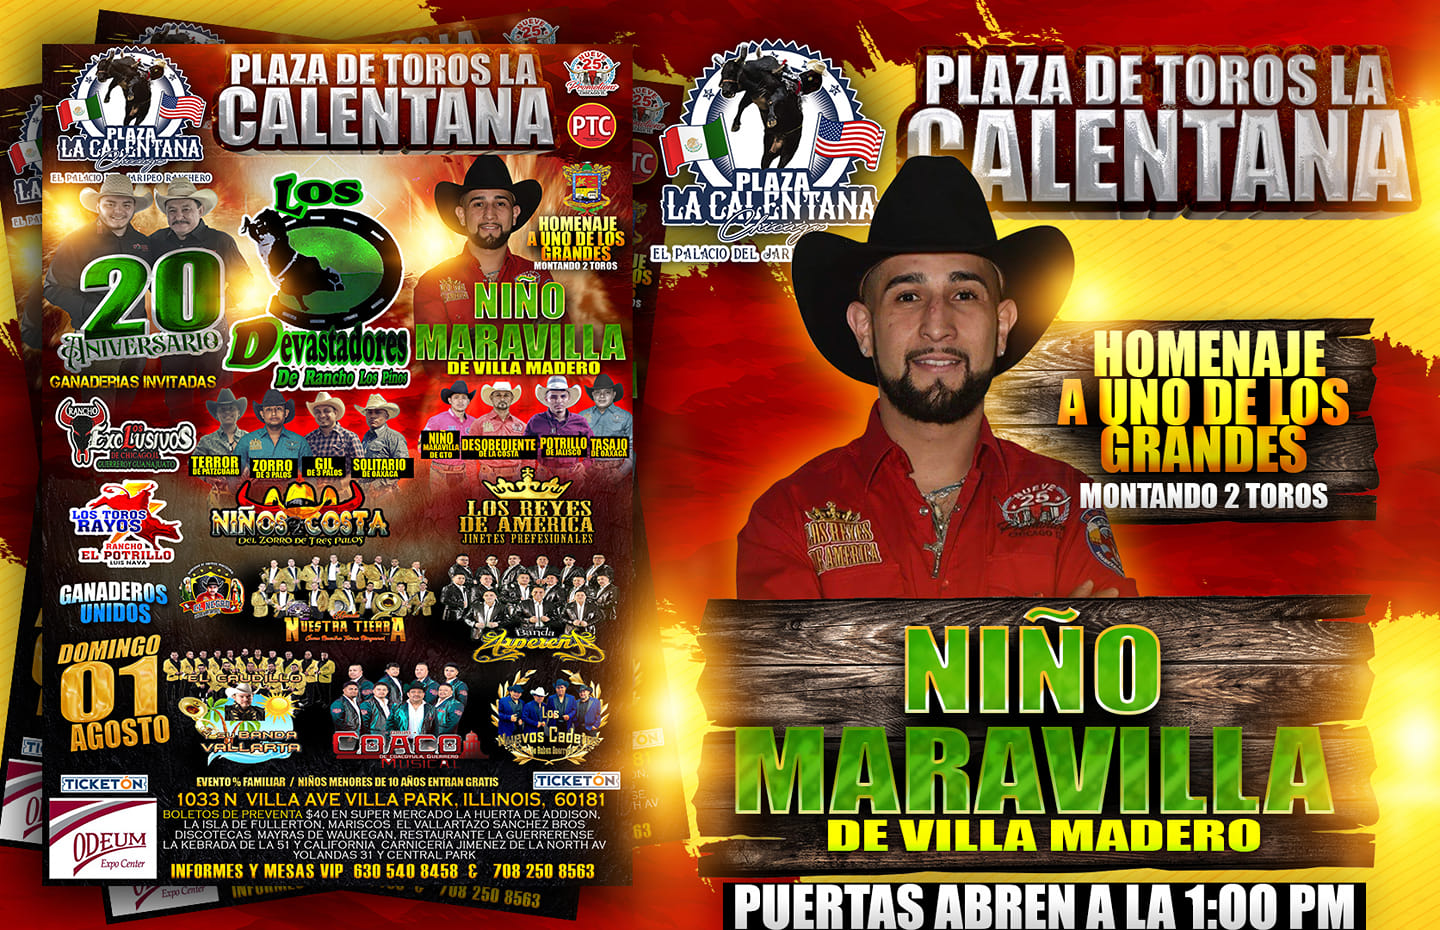 Poster for August 1, 2021, jaripeo rodeo at the Odeum Expo Center in Villa Park, Illinois